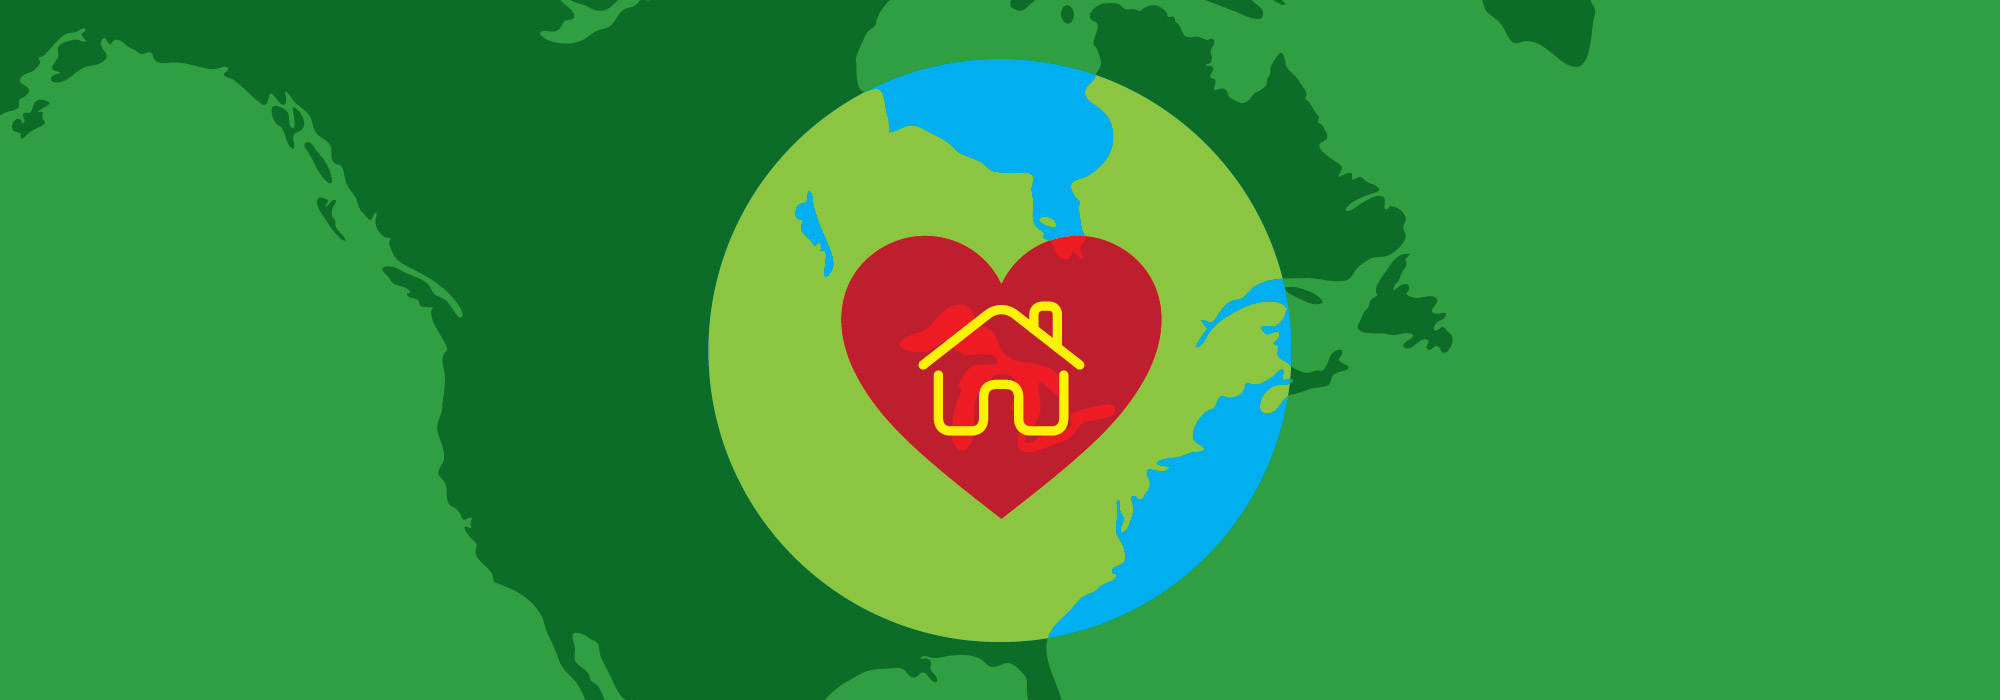 Green map of Canada with a red heart and a house icon